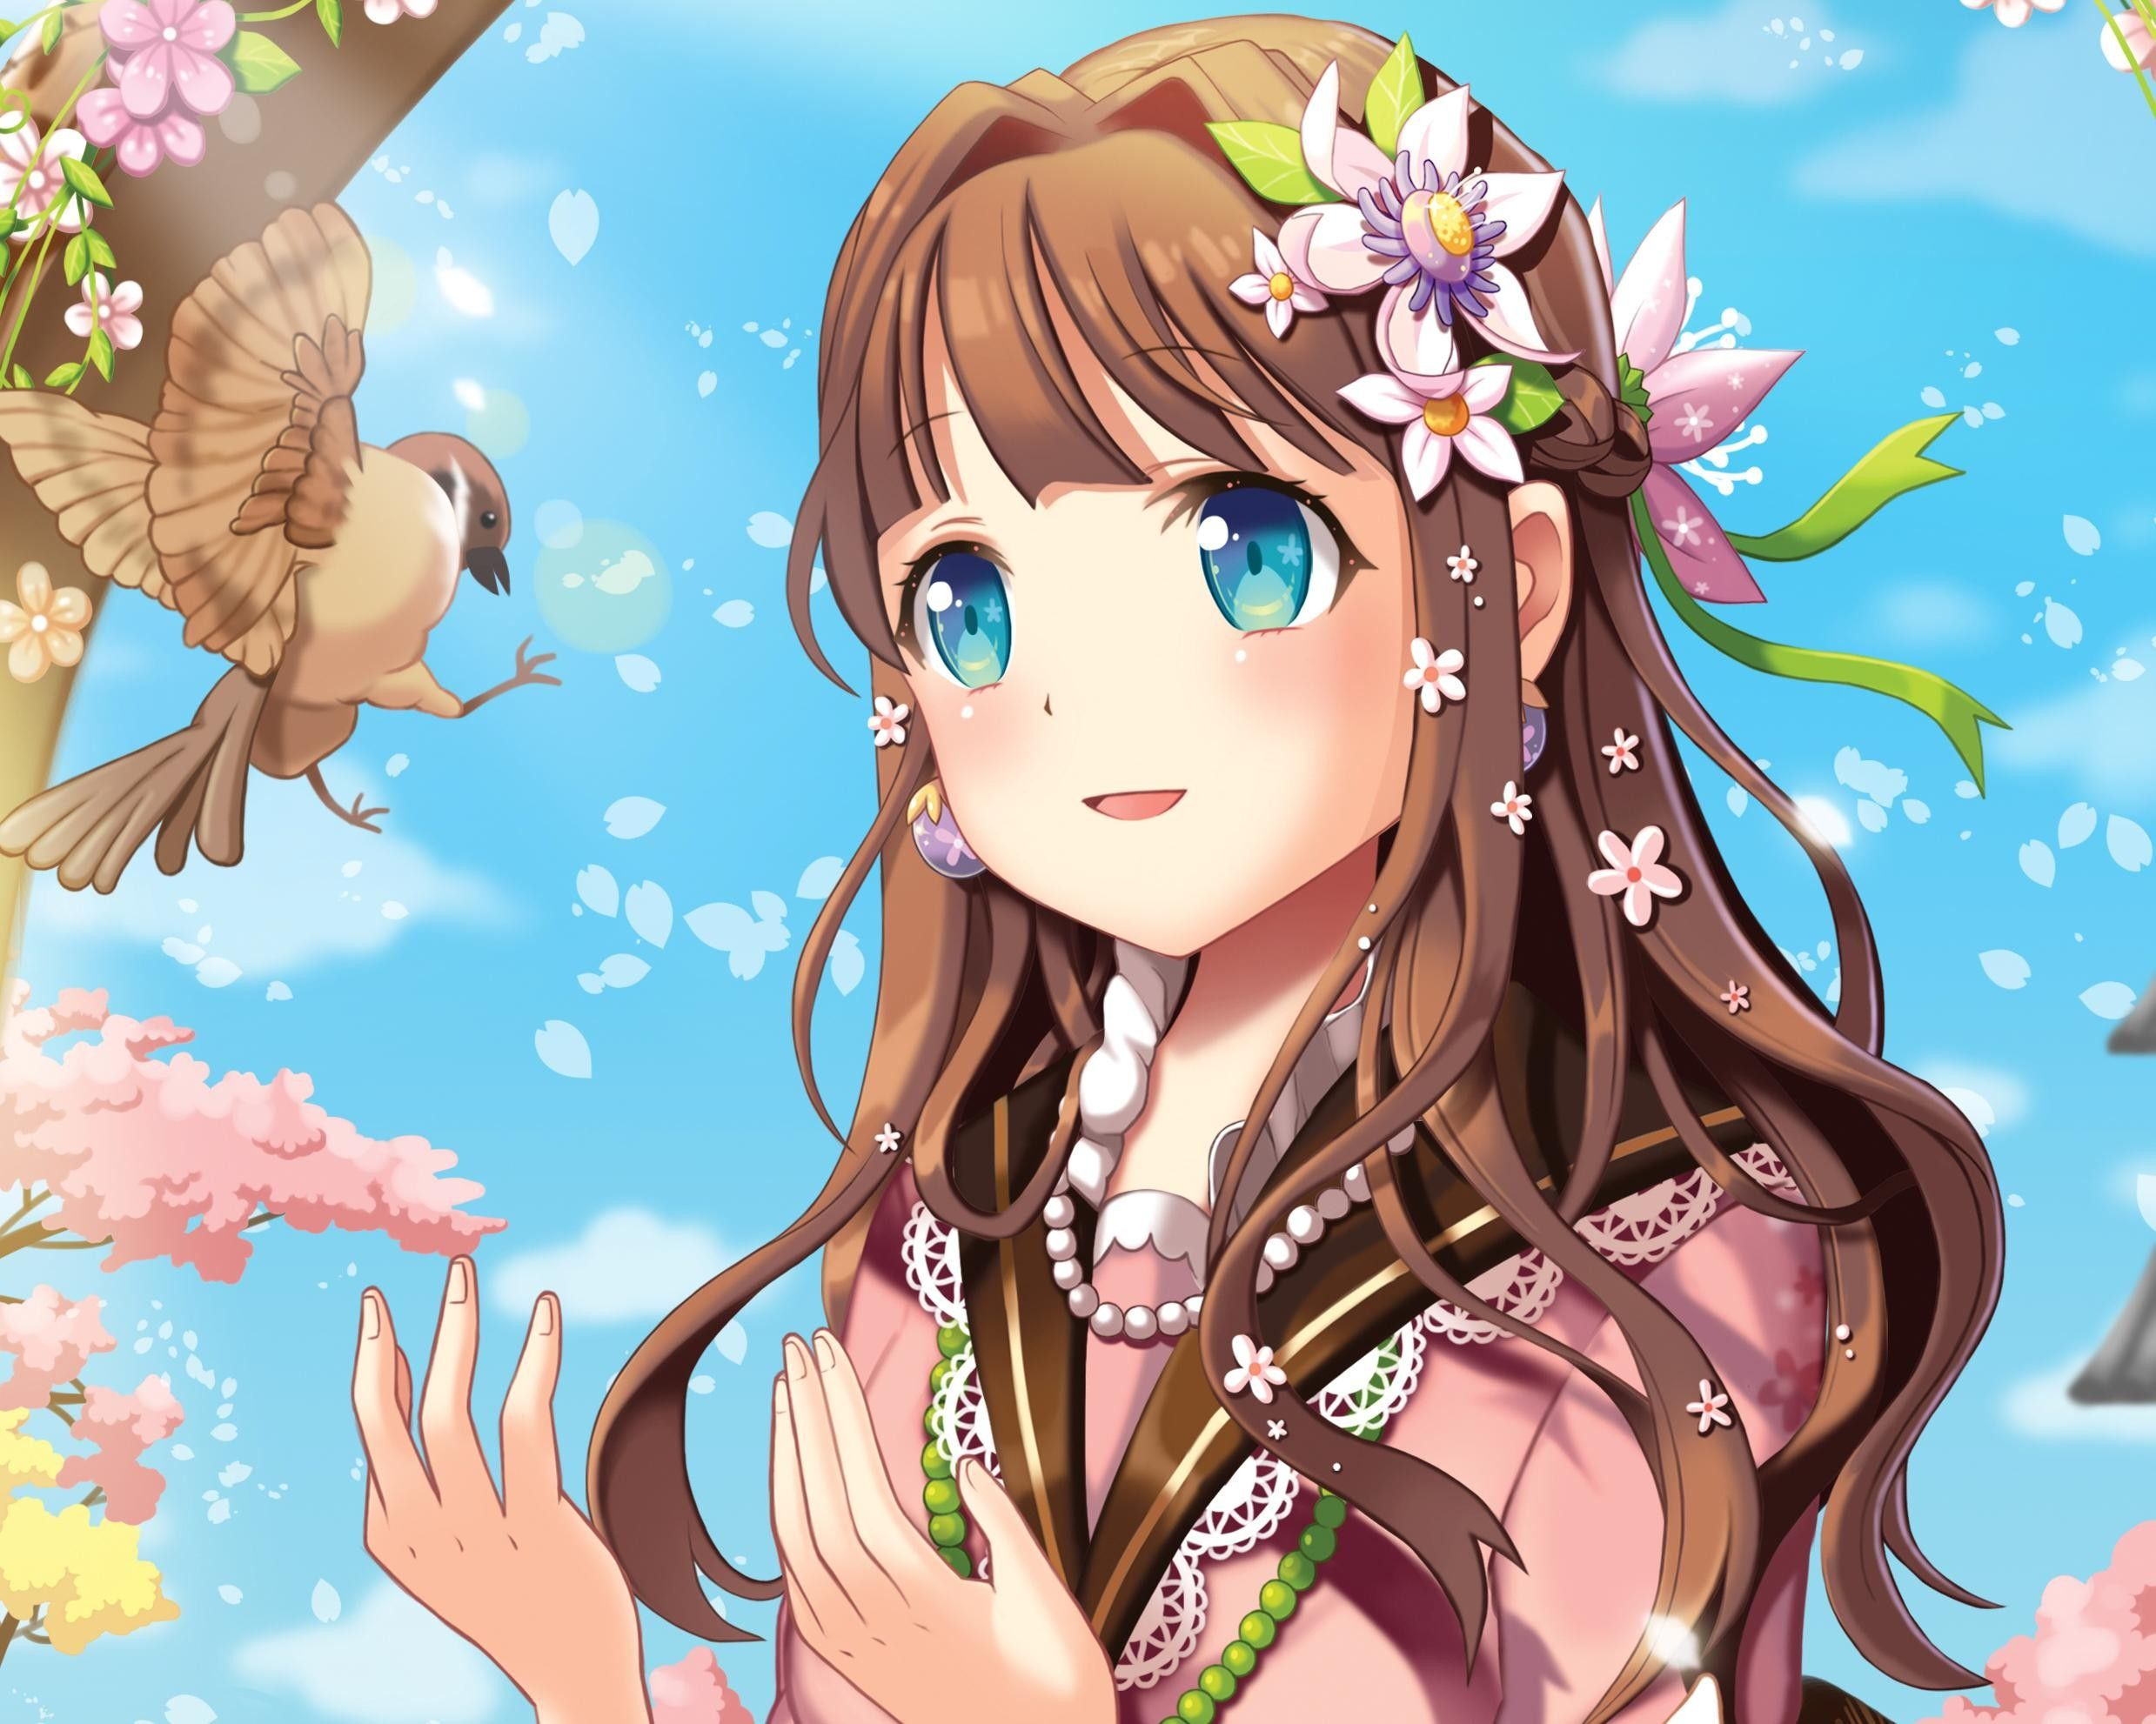 Fall Chipmunk Hd Wallpapers Anime Girl With Brown Hair Google Search Anime